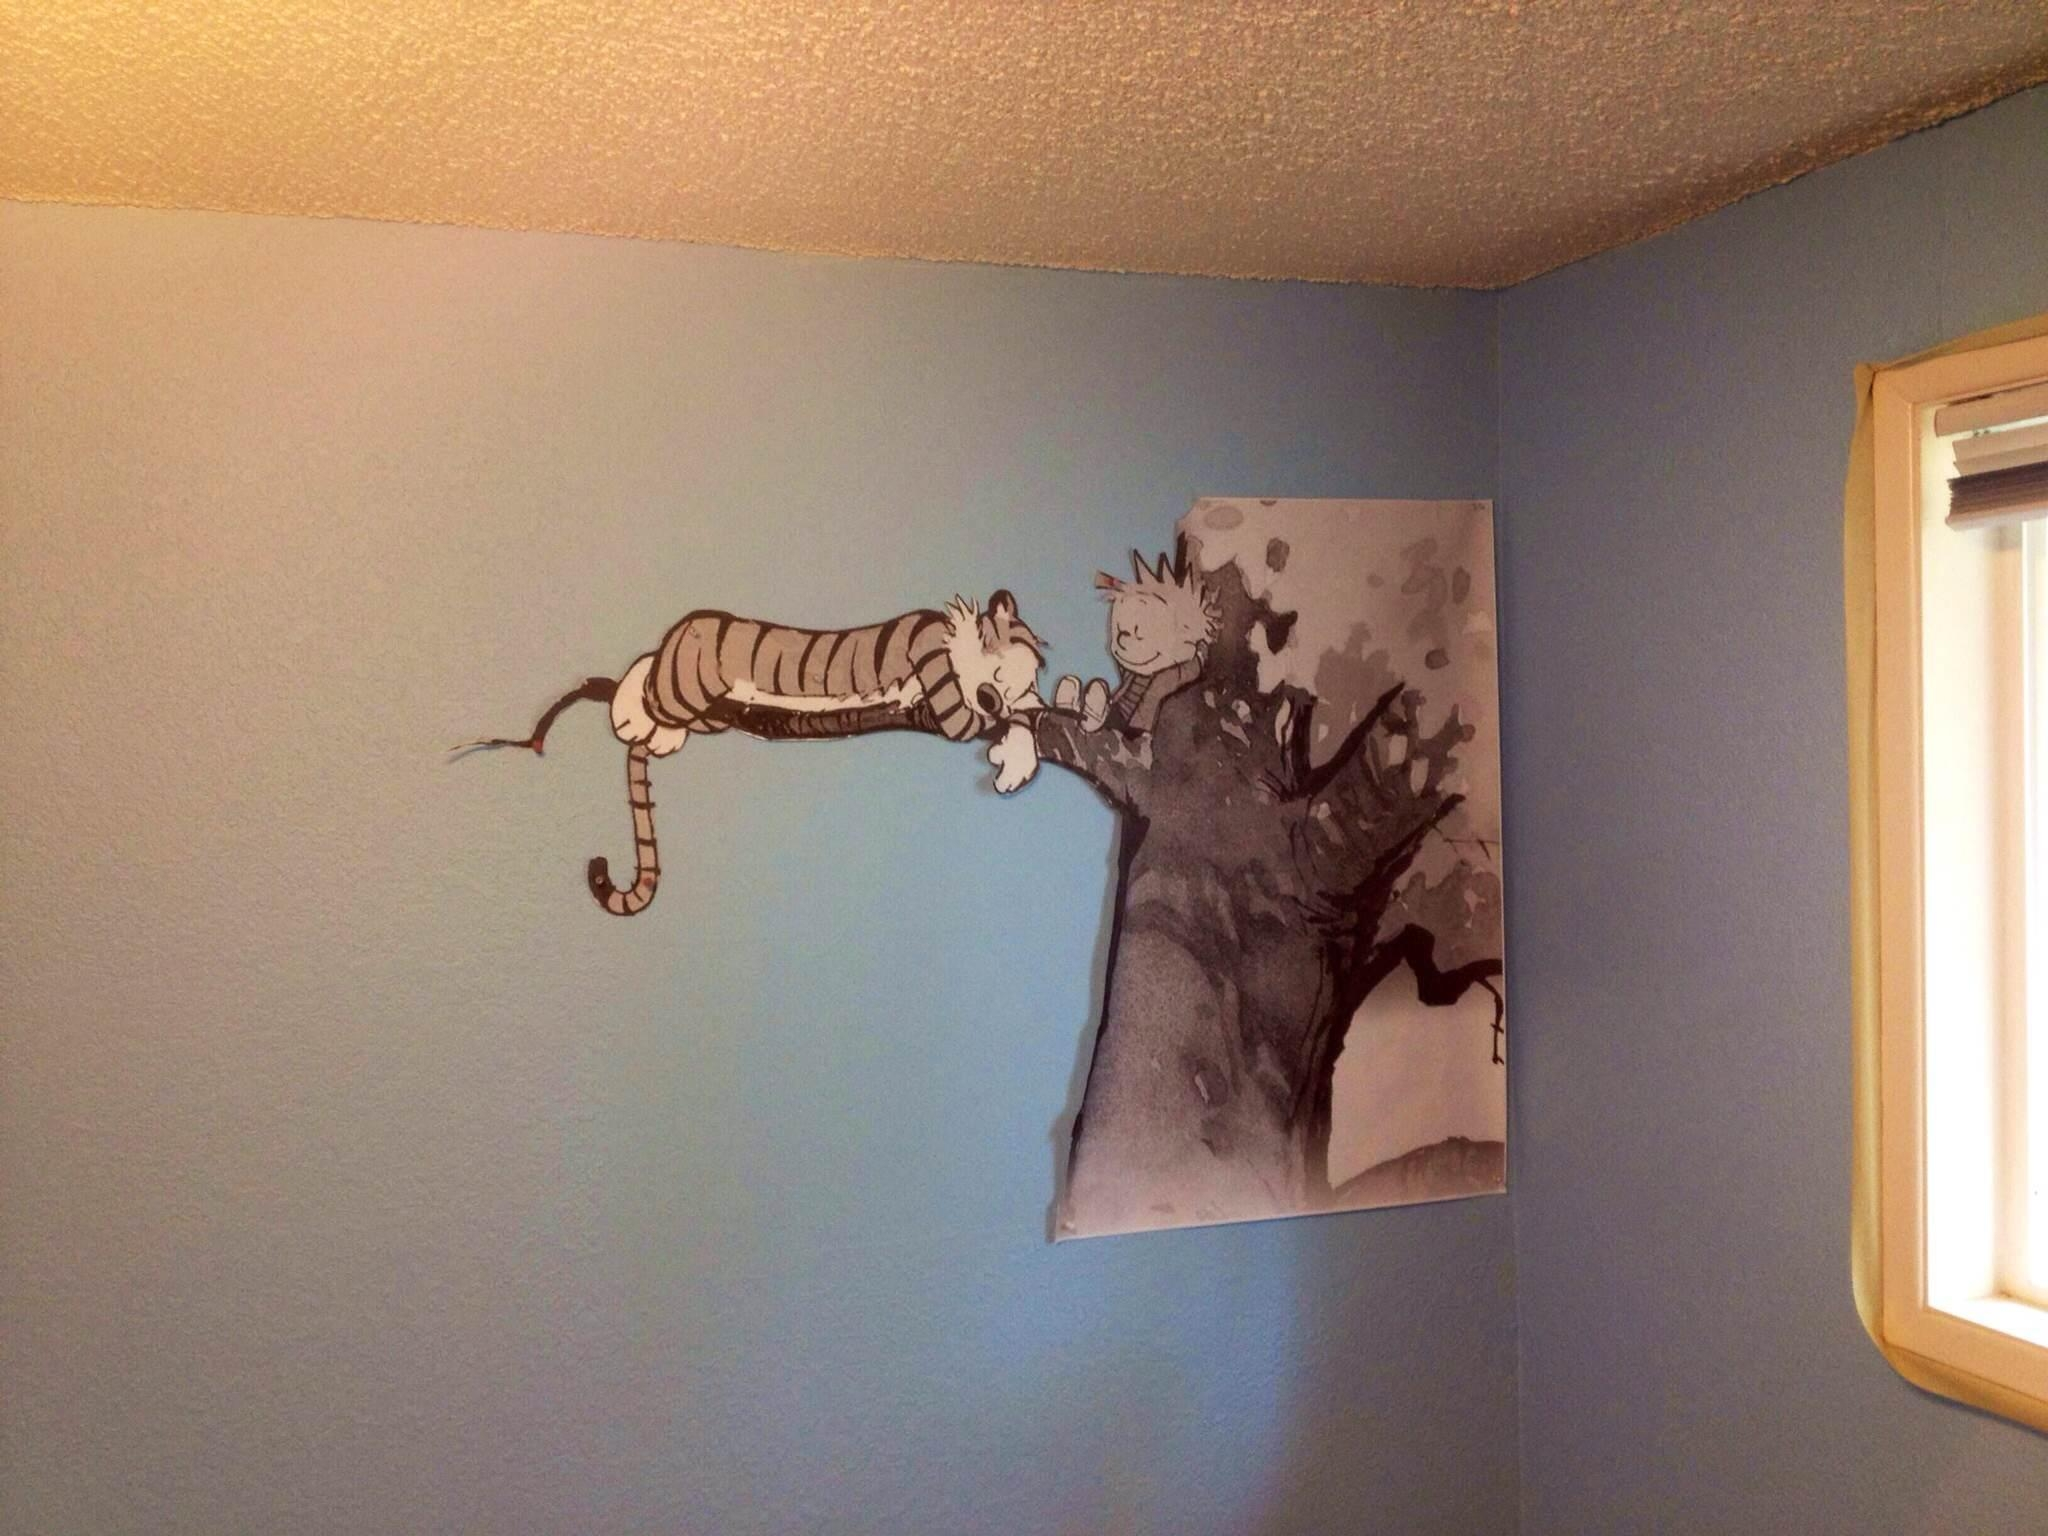 Not An Original Idea, But Here's Our Calvin And Hobbes Mural For Regarding Calvin And Hobbes Wall Art (Image 17 of 20)